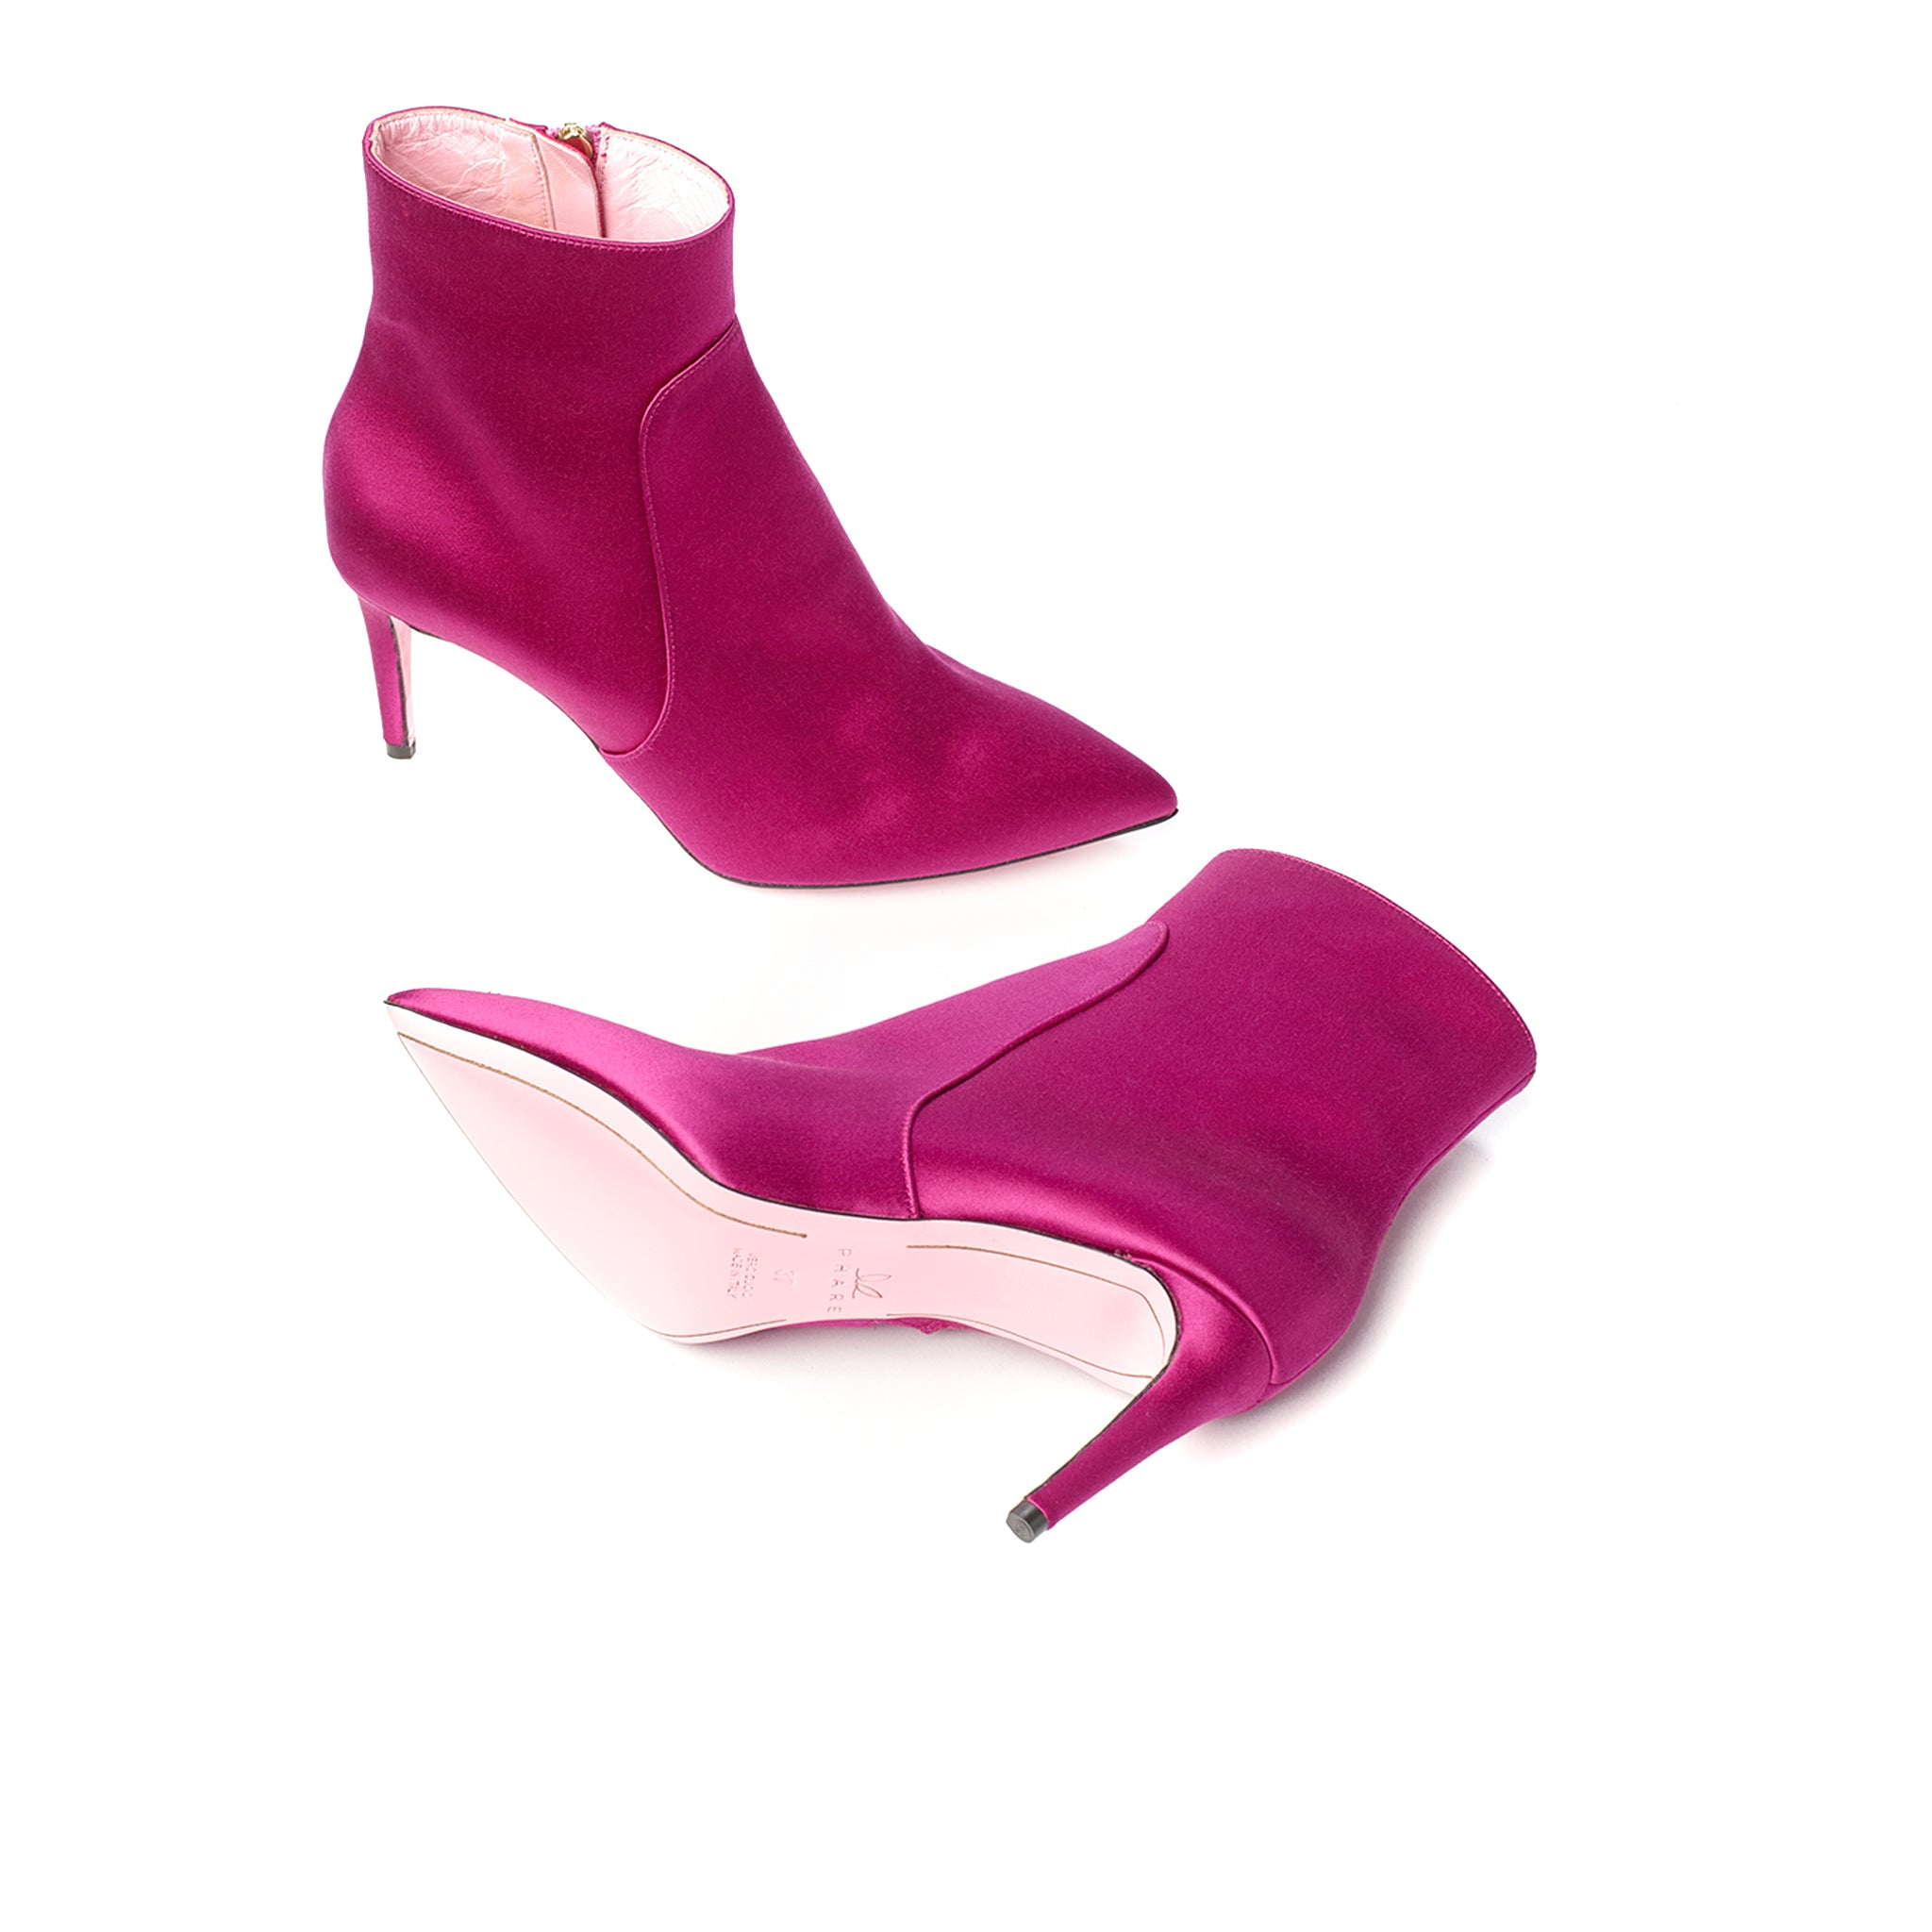 Phare classic heel Fuchsia Satin high heel boot, made in Italy sole view